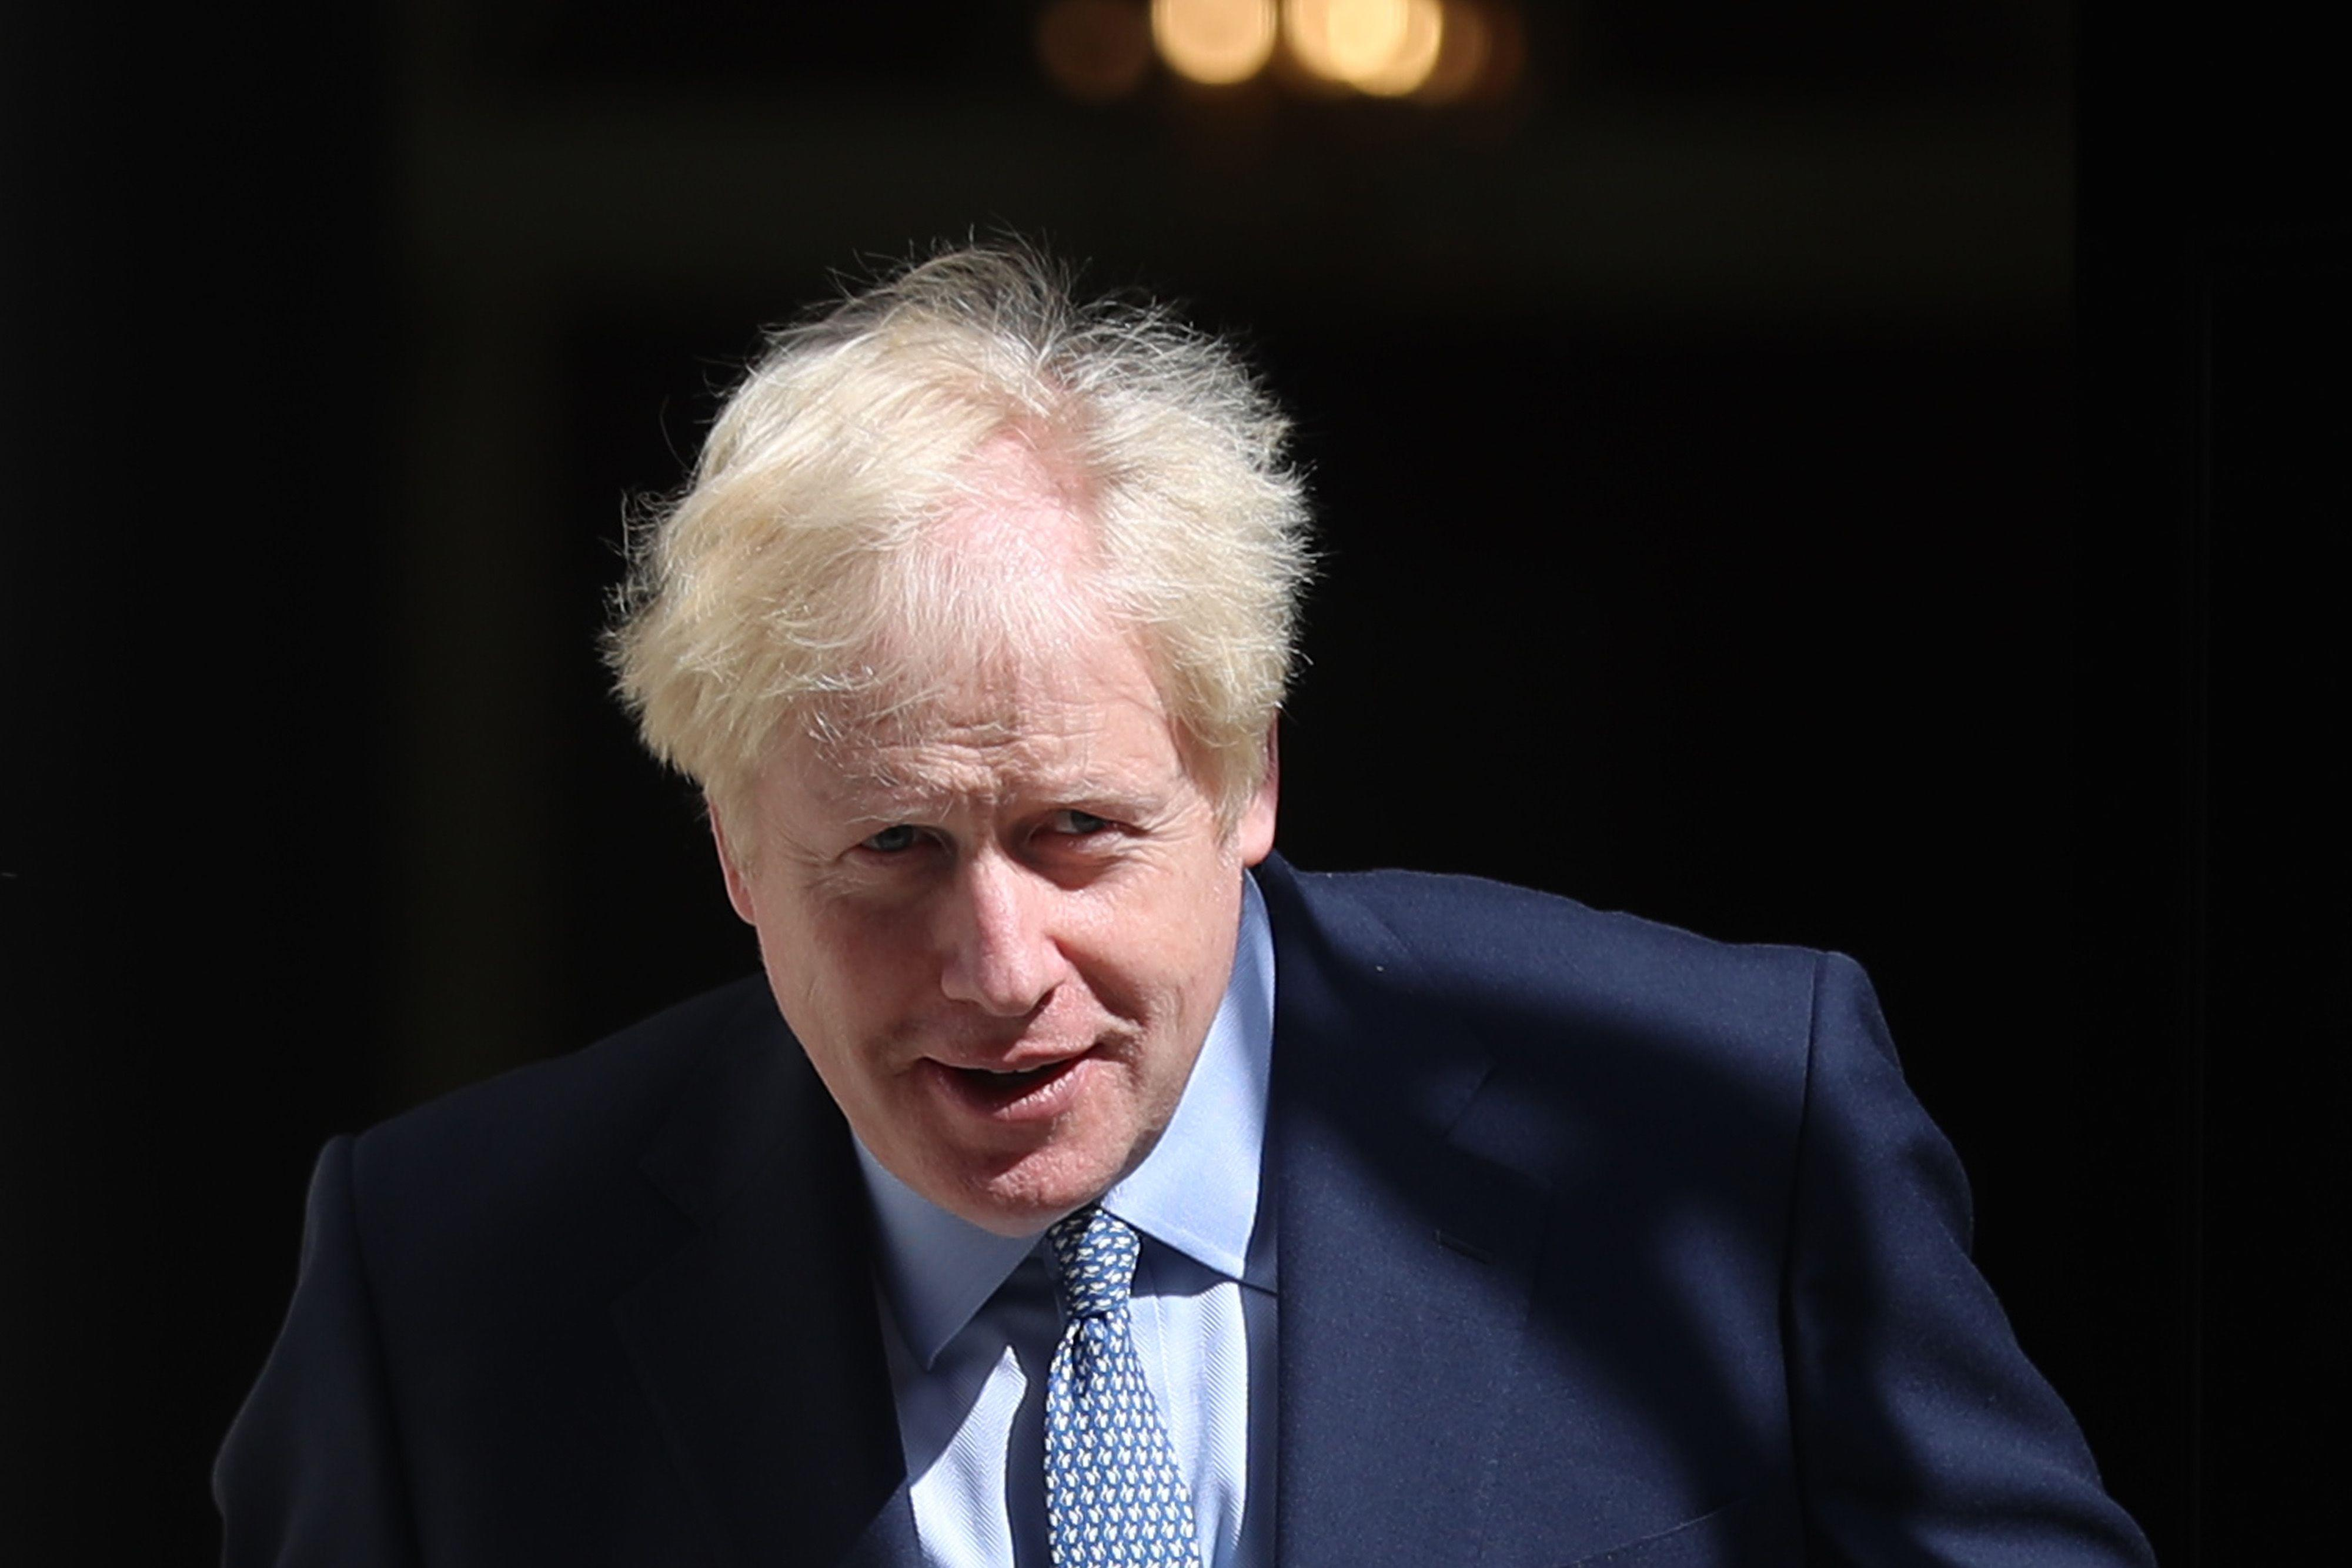 UK To Relax Immigration Rules For Scientists, Says Boris Johnson